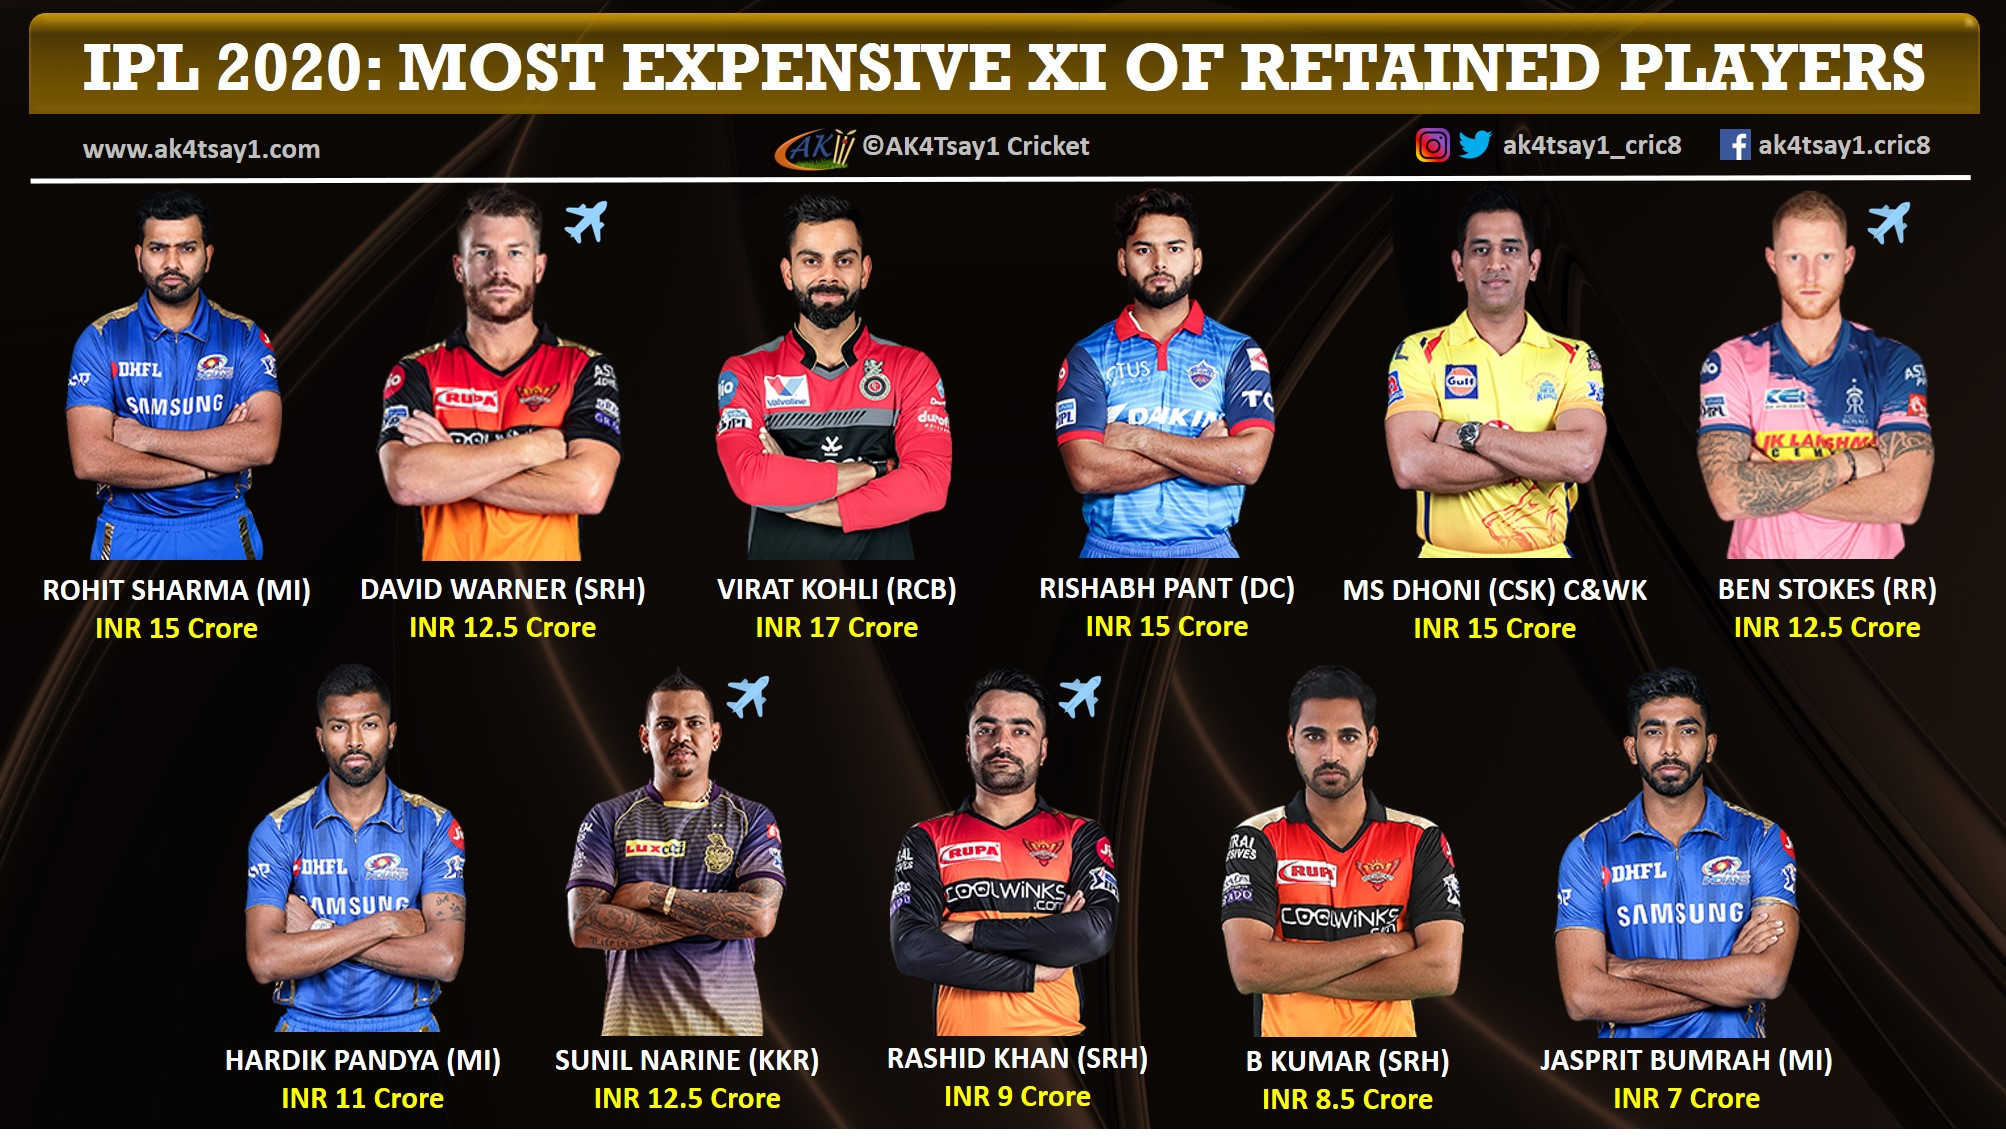 IPL 2020 Most expensive 11 of Retained Players